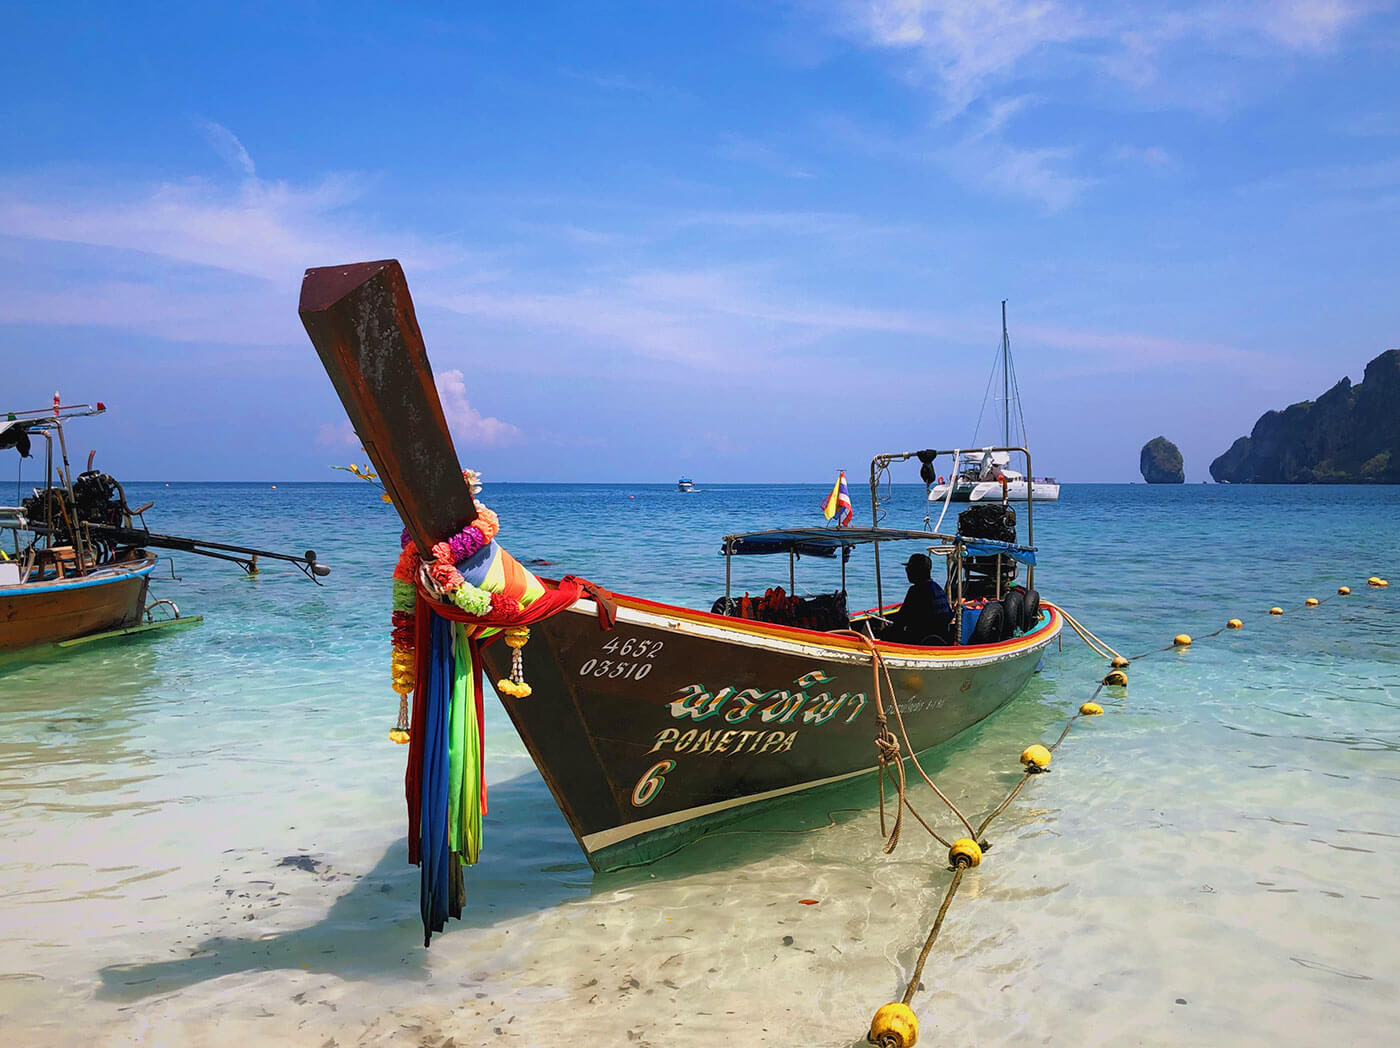 6 Things to do in Phuket (And Many Useful Travel Tips!) - Girl Eat World